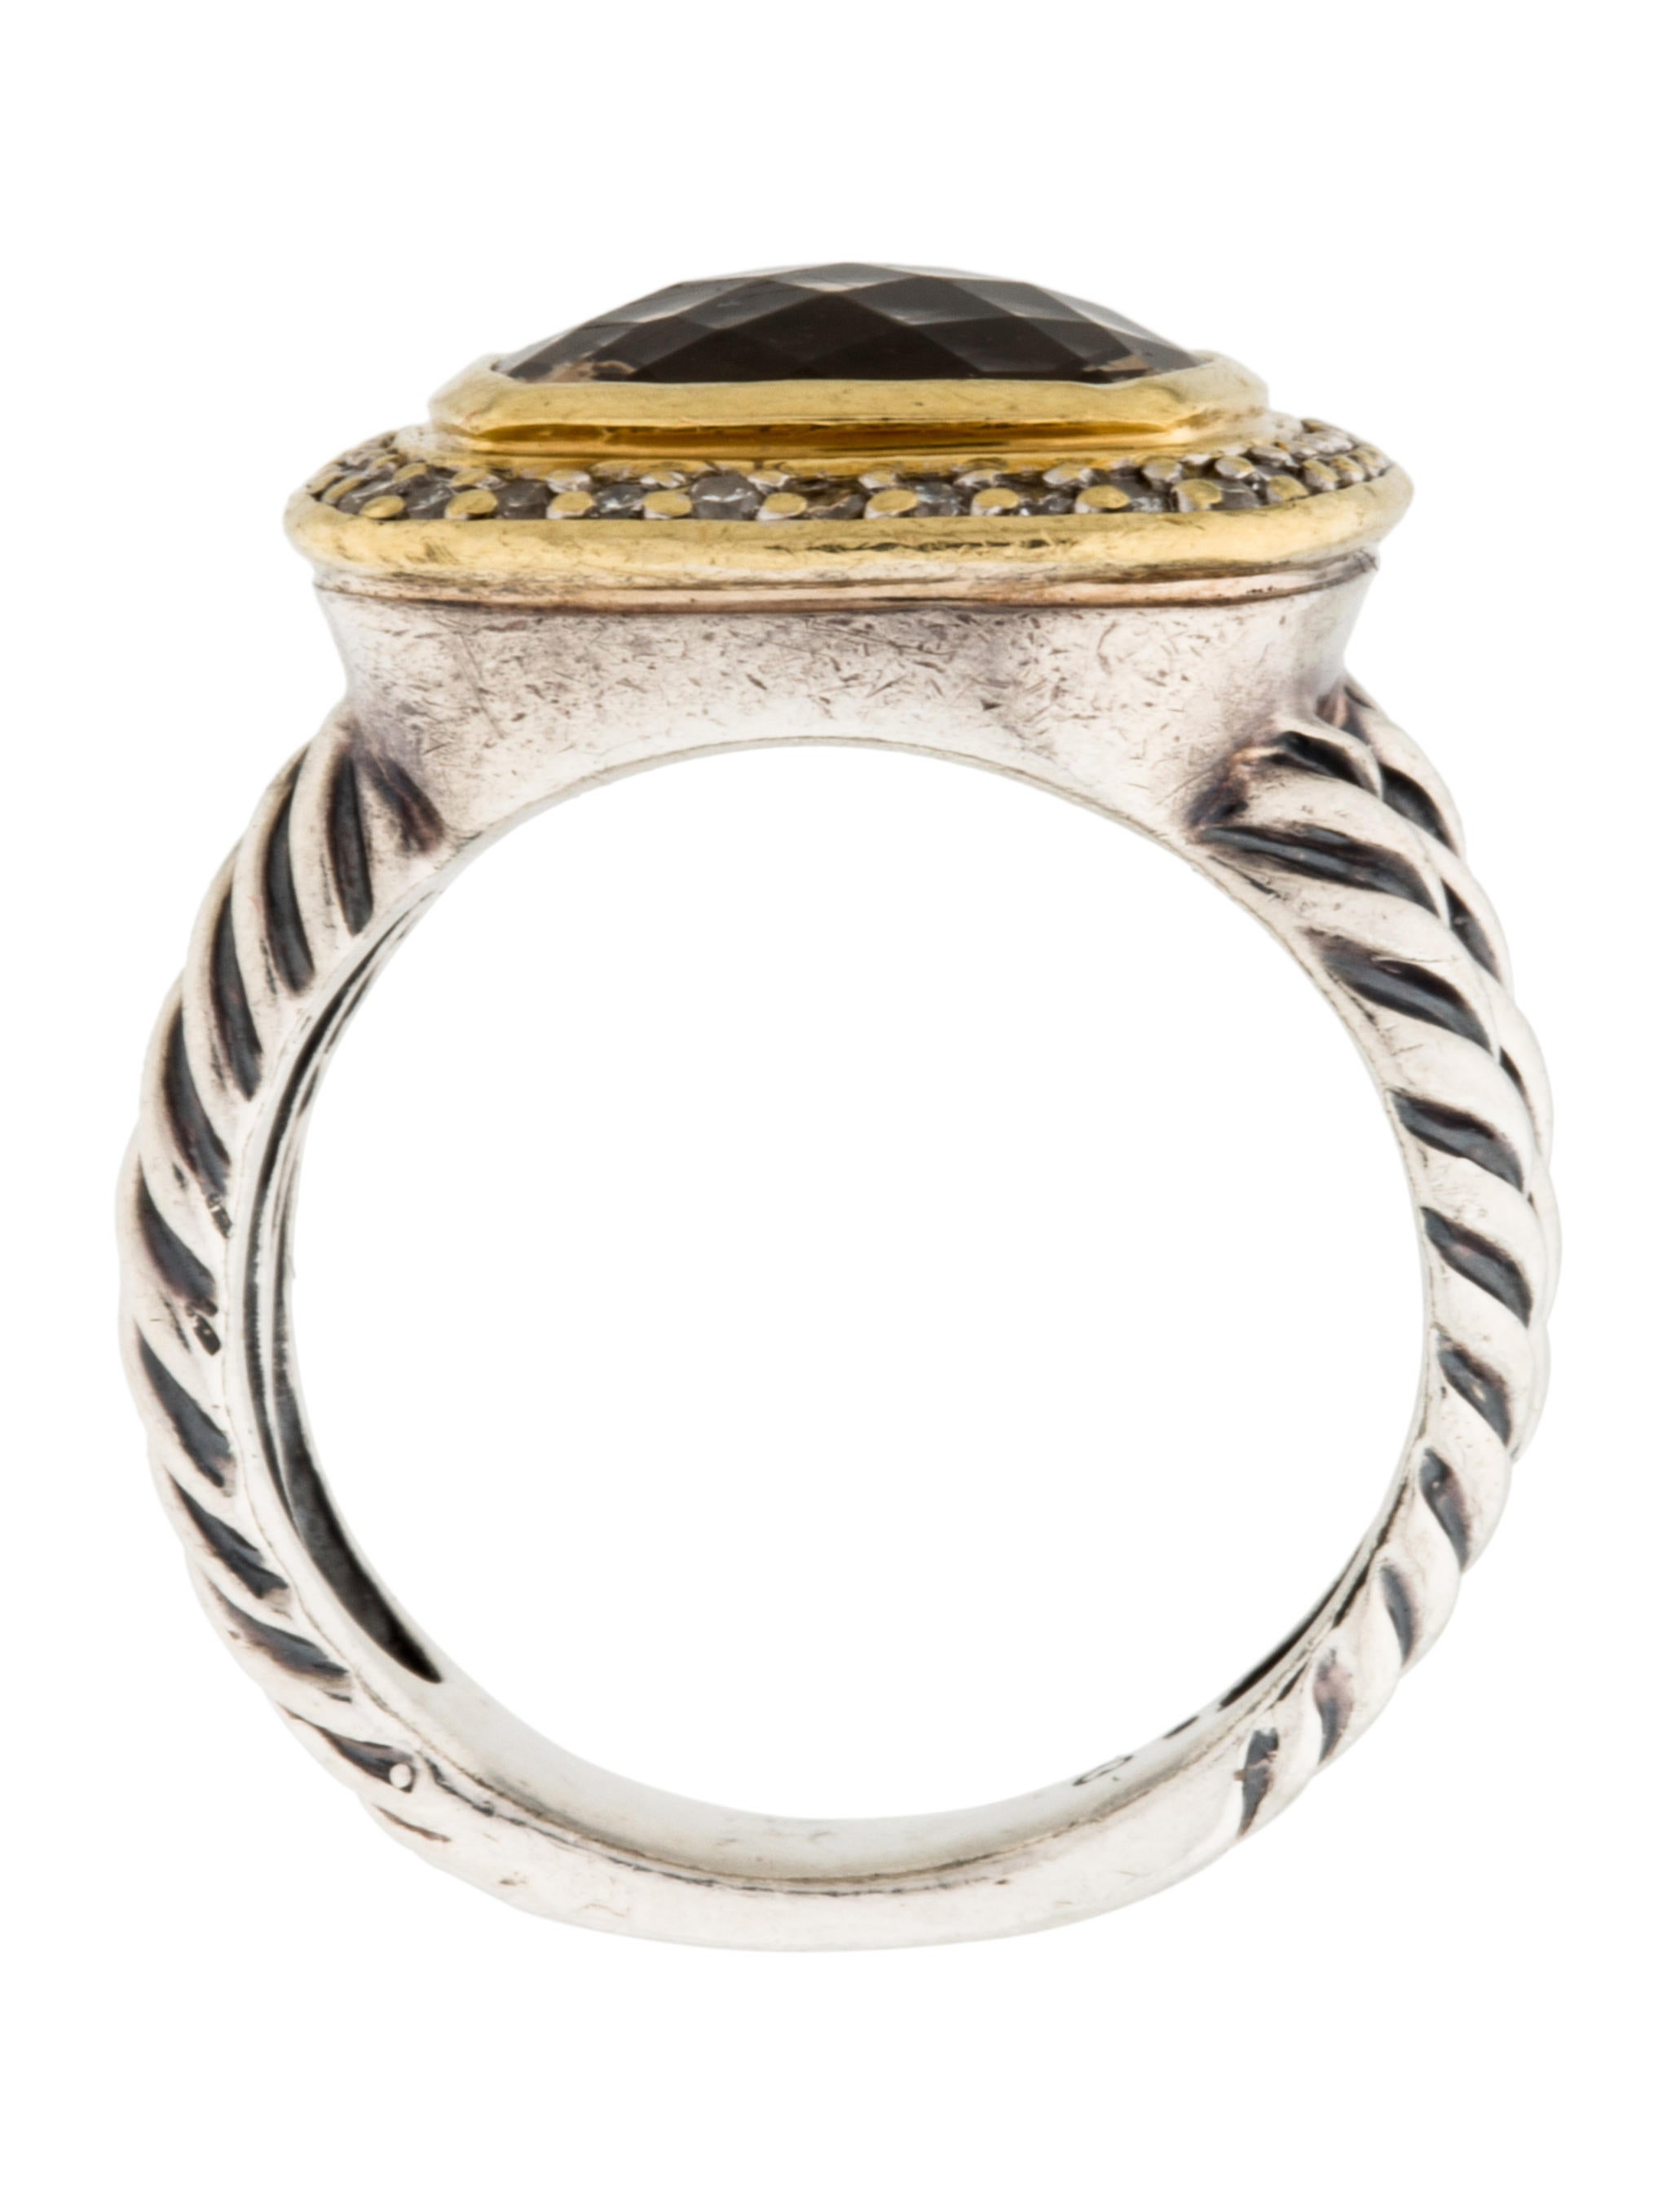 David Yurman Diamond Amp Smoky Quartz Albion Cocktail Ring